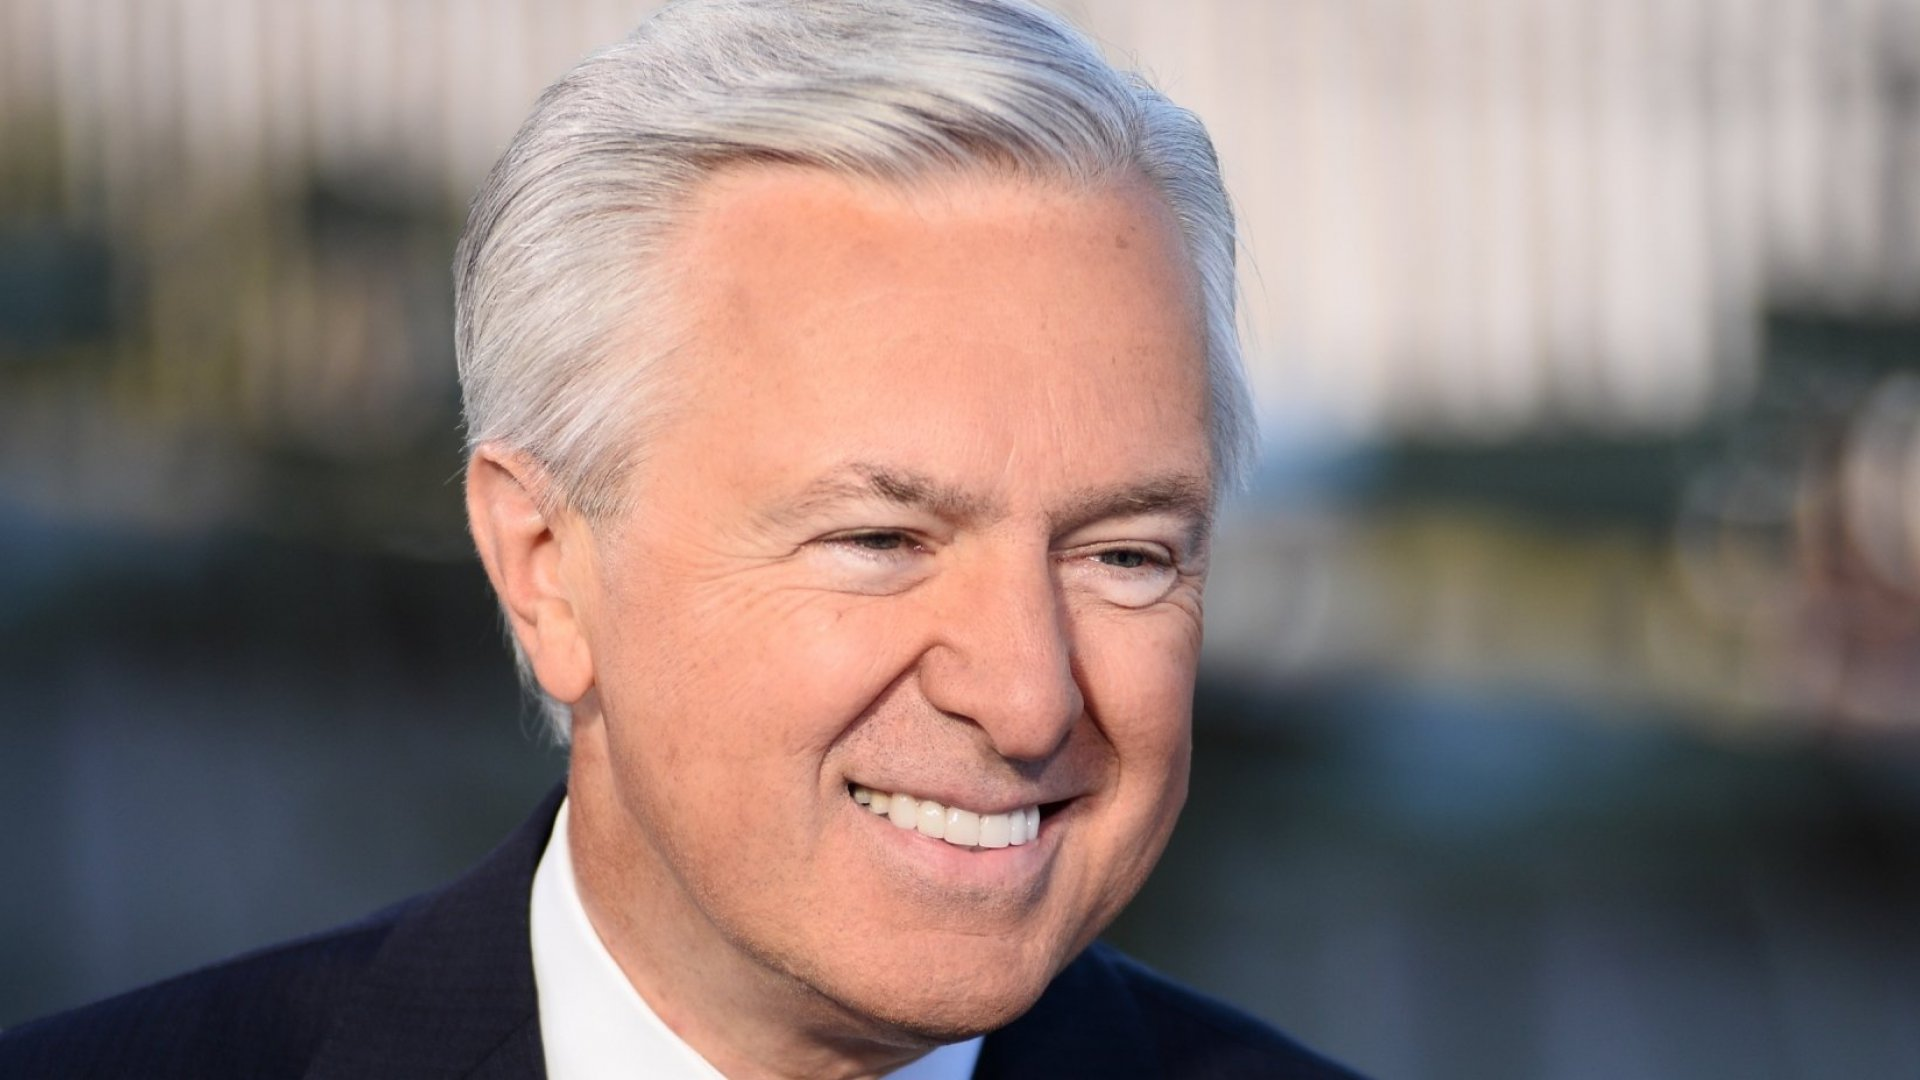 Incredibly, Wells Fargo CEO John StumpfThinks He Did NothingWrong